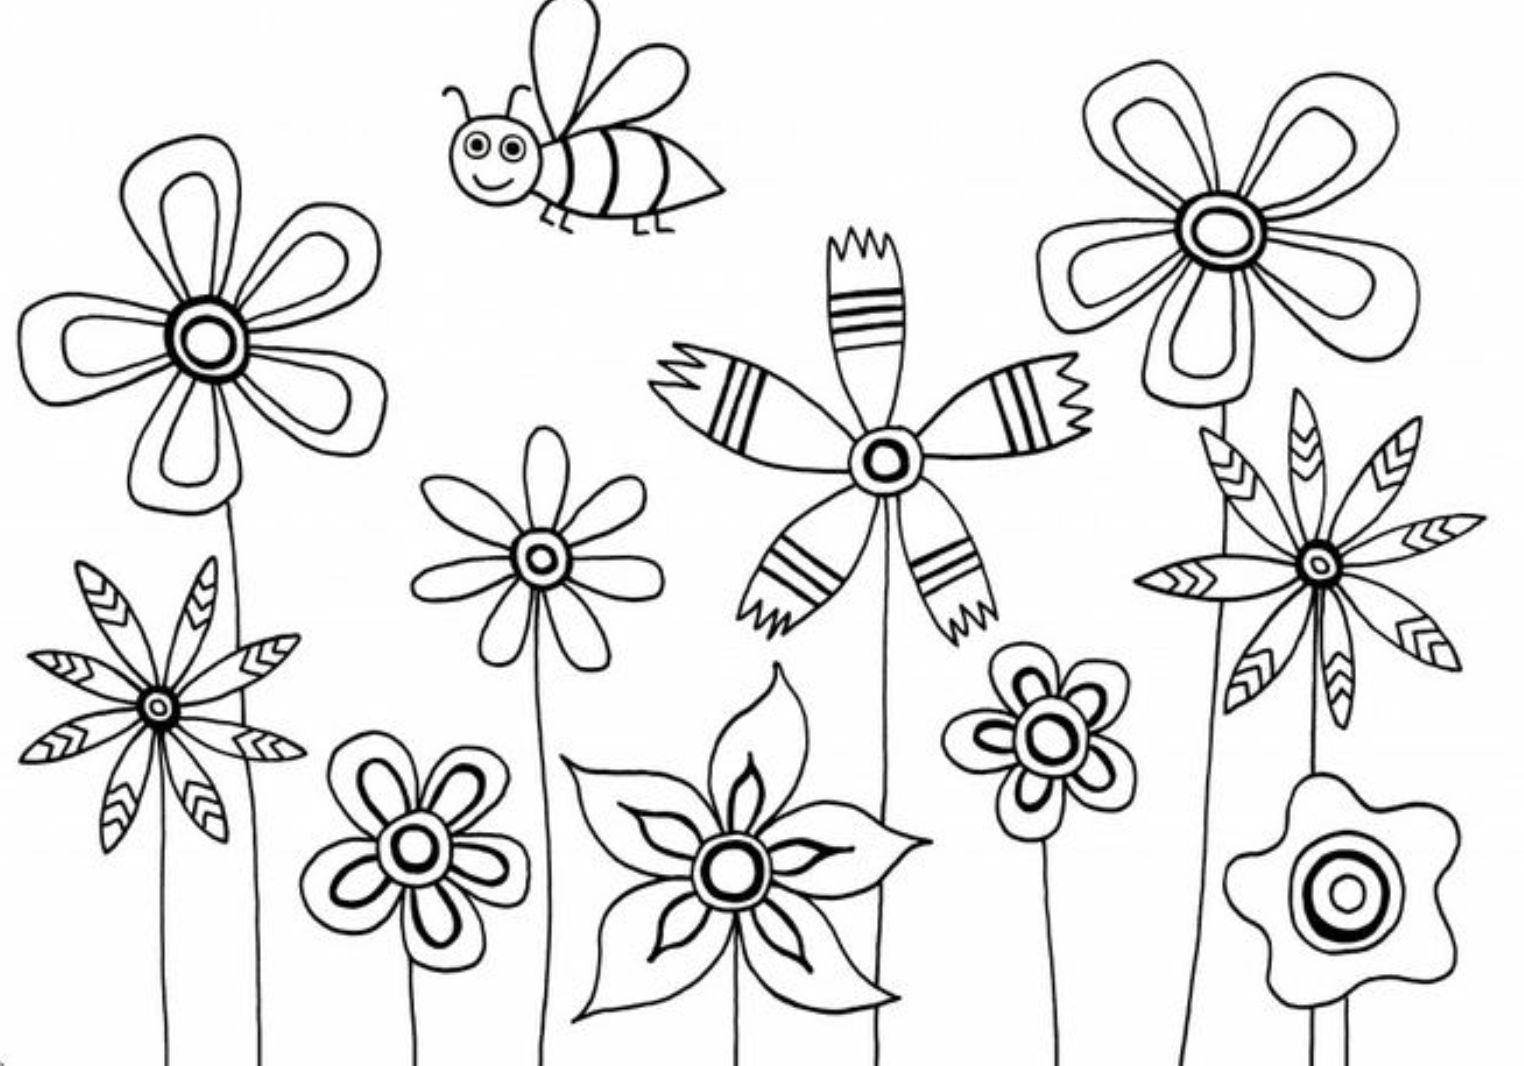 easy cute rose coloring pages cute flower coloring pages at getcoloringscom free rose easy coloring cute pages